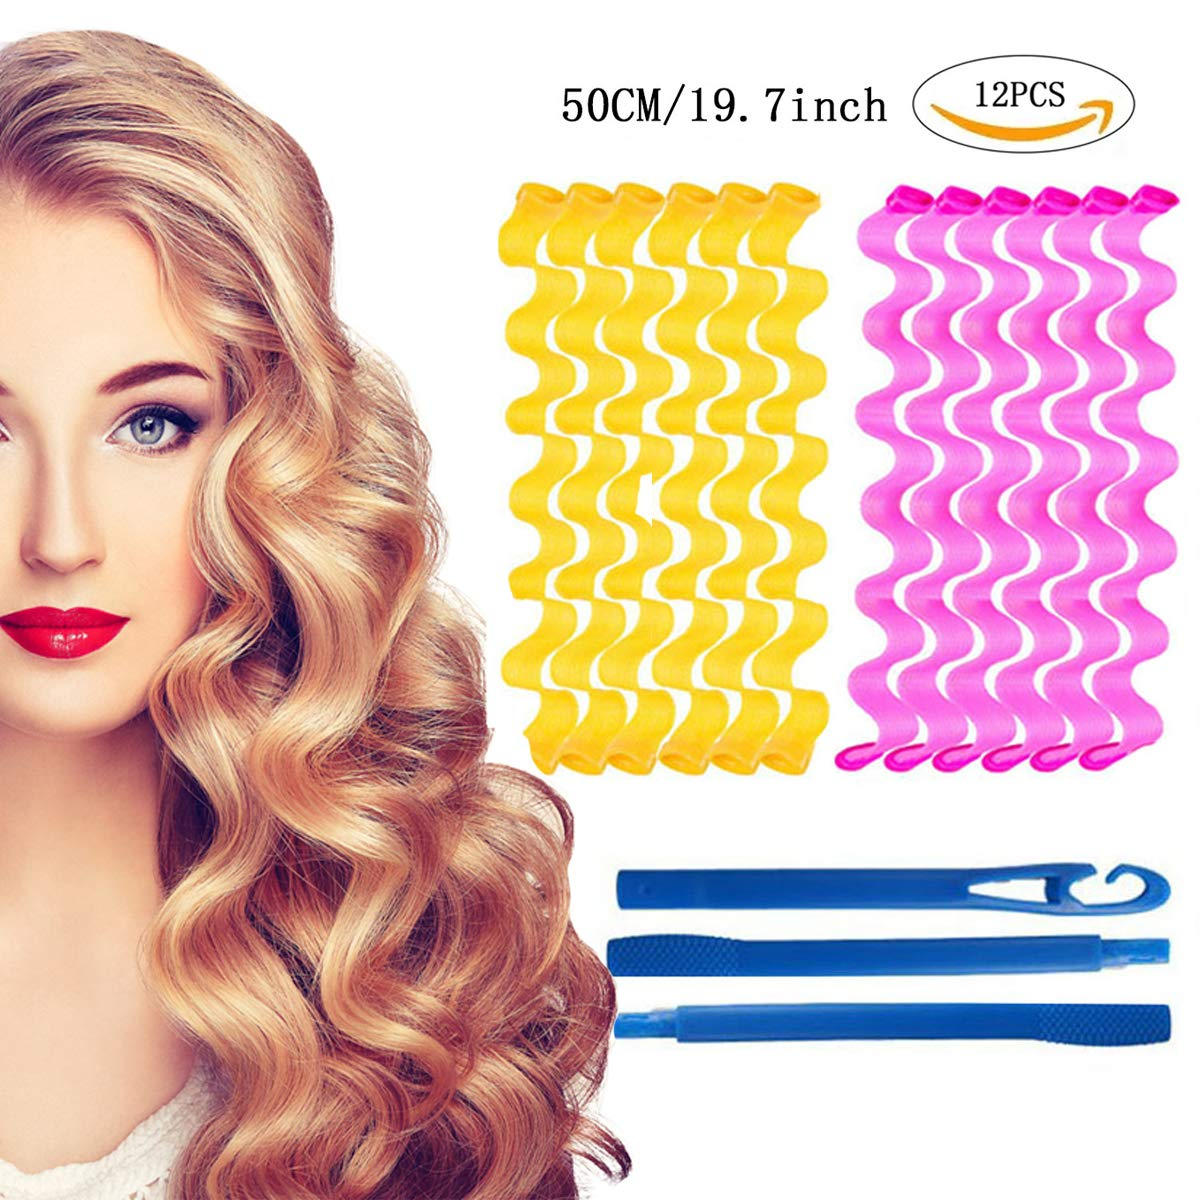 Long Hair Curler Wave Formers, Heatless Water Ripple Hair Curlers Silicone Soft Overnight Curler DIY Hair Style Tools Set (Bonus: 3 Pcs Hooks)(50cm/12pcs) by Dualshine